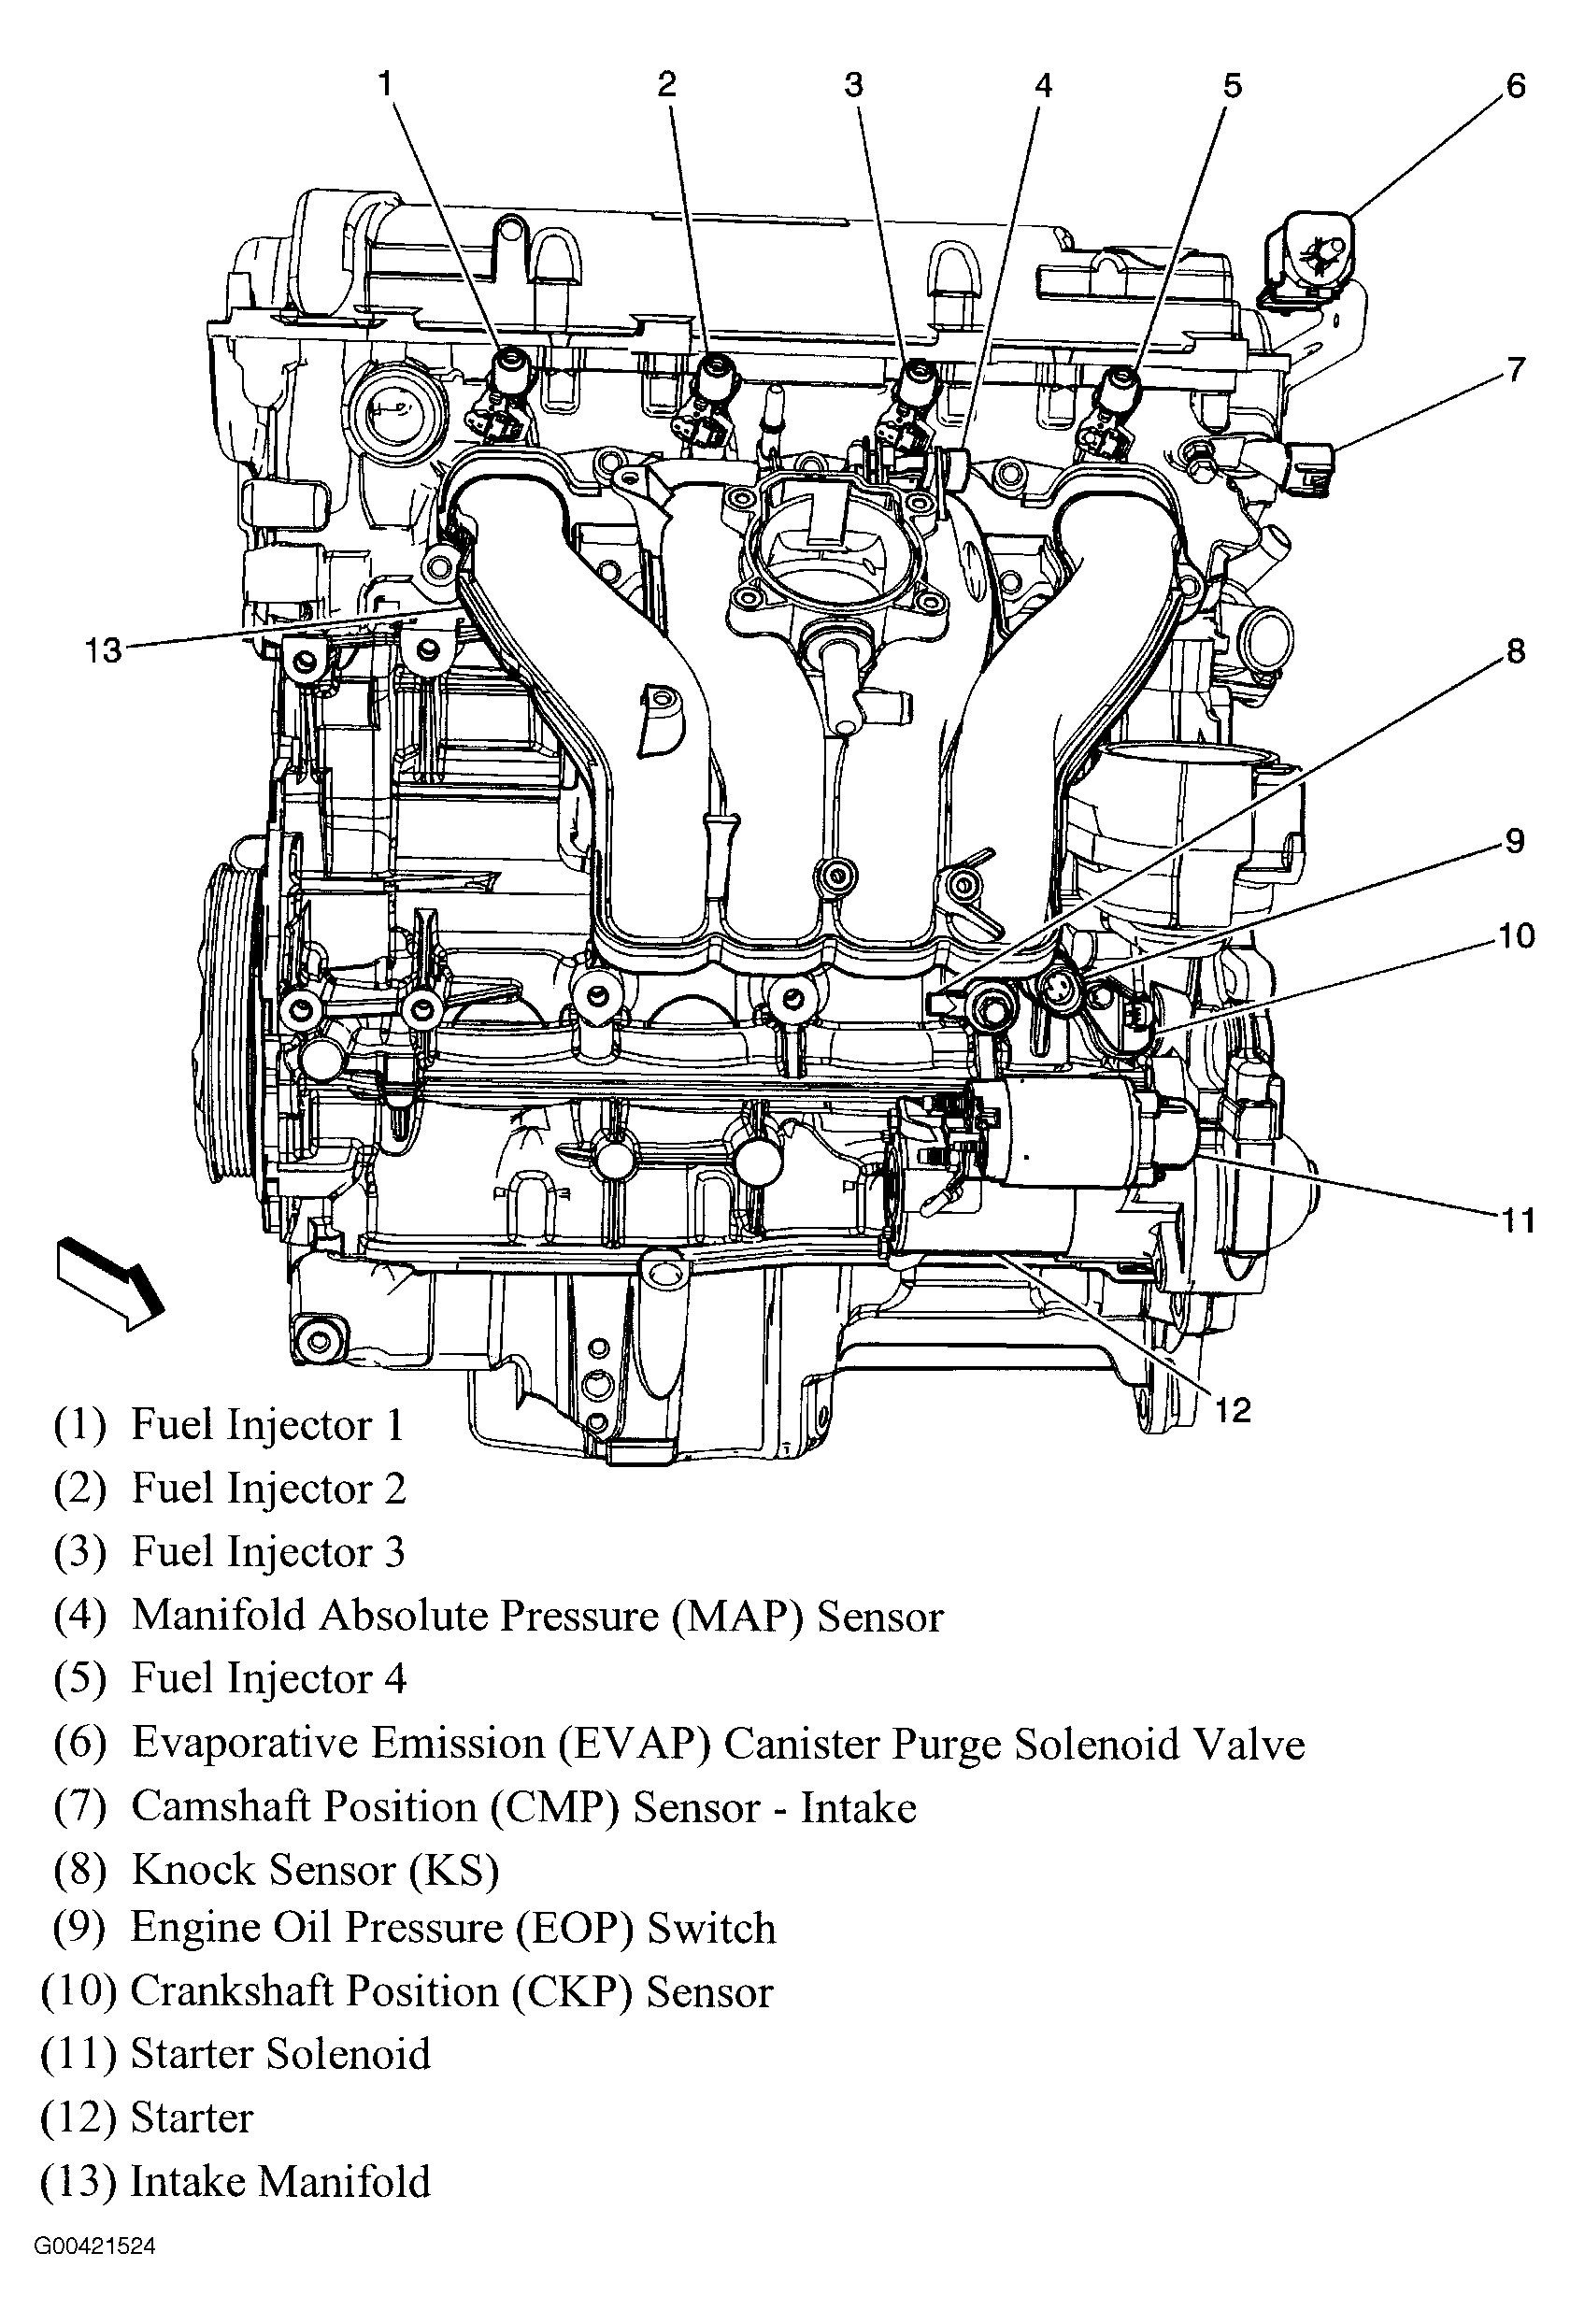 chevrolet ecotec engine diagram basic wiring diagram u2022 rh rnetcomputer co Chevy Malibu 3.1 Engine 2.4 Ecotec Engine Diagram